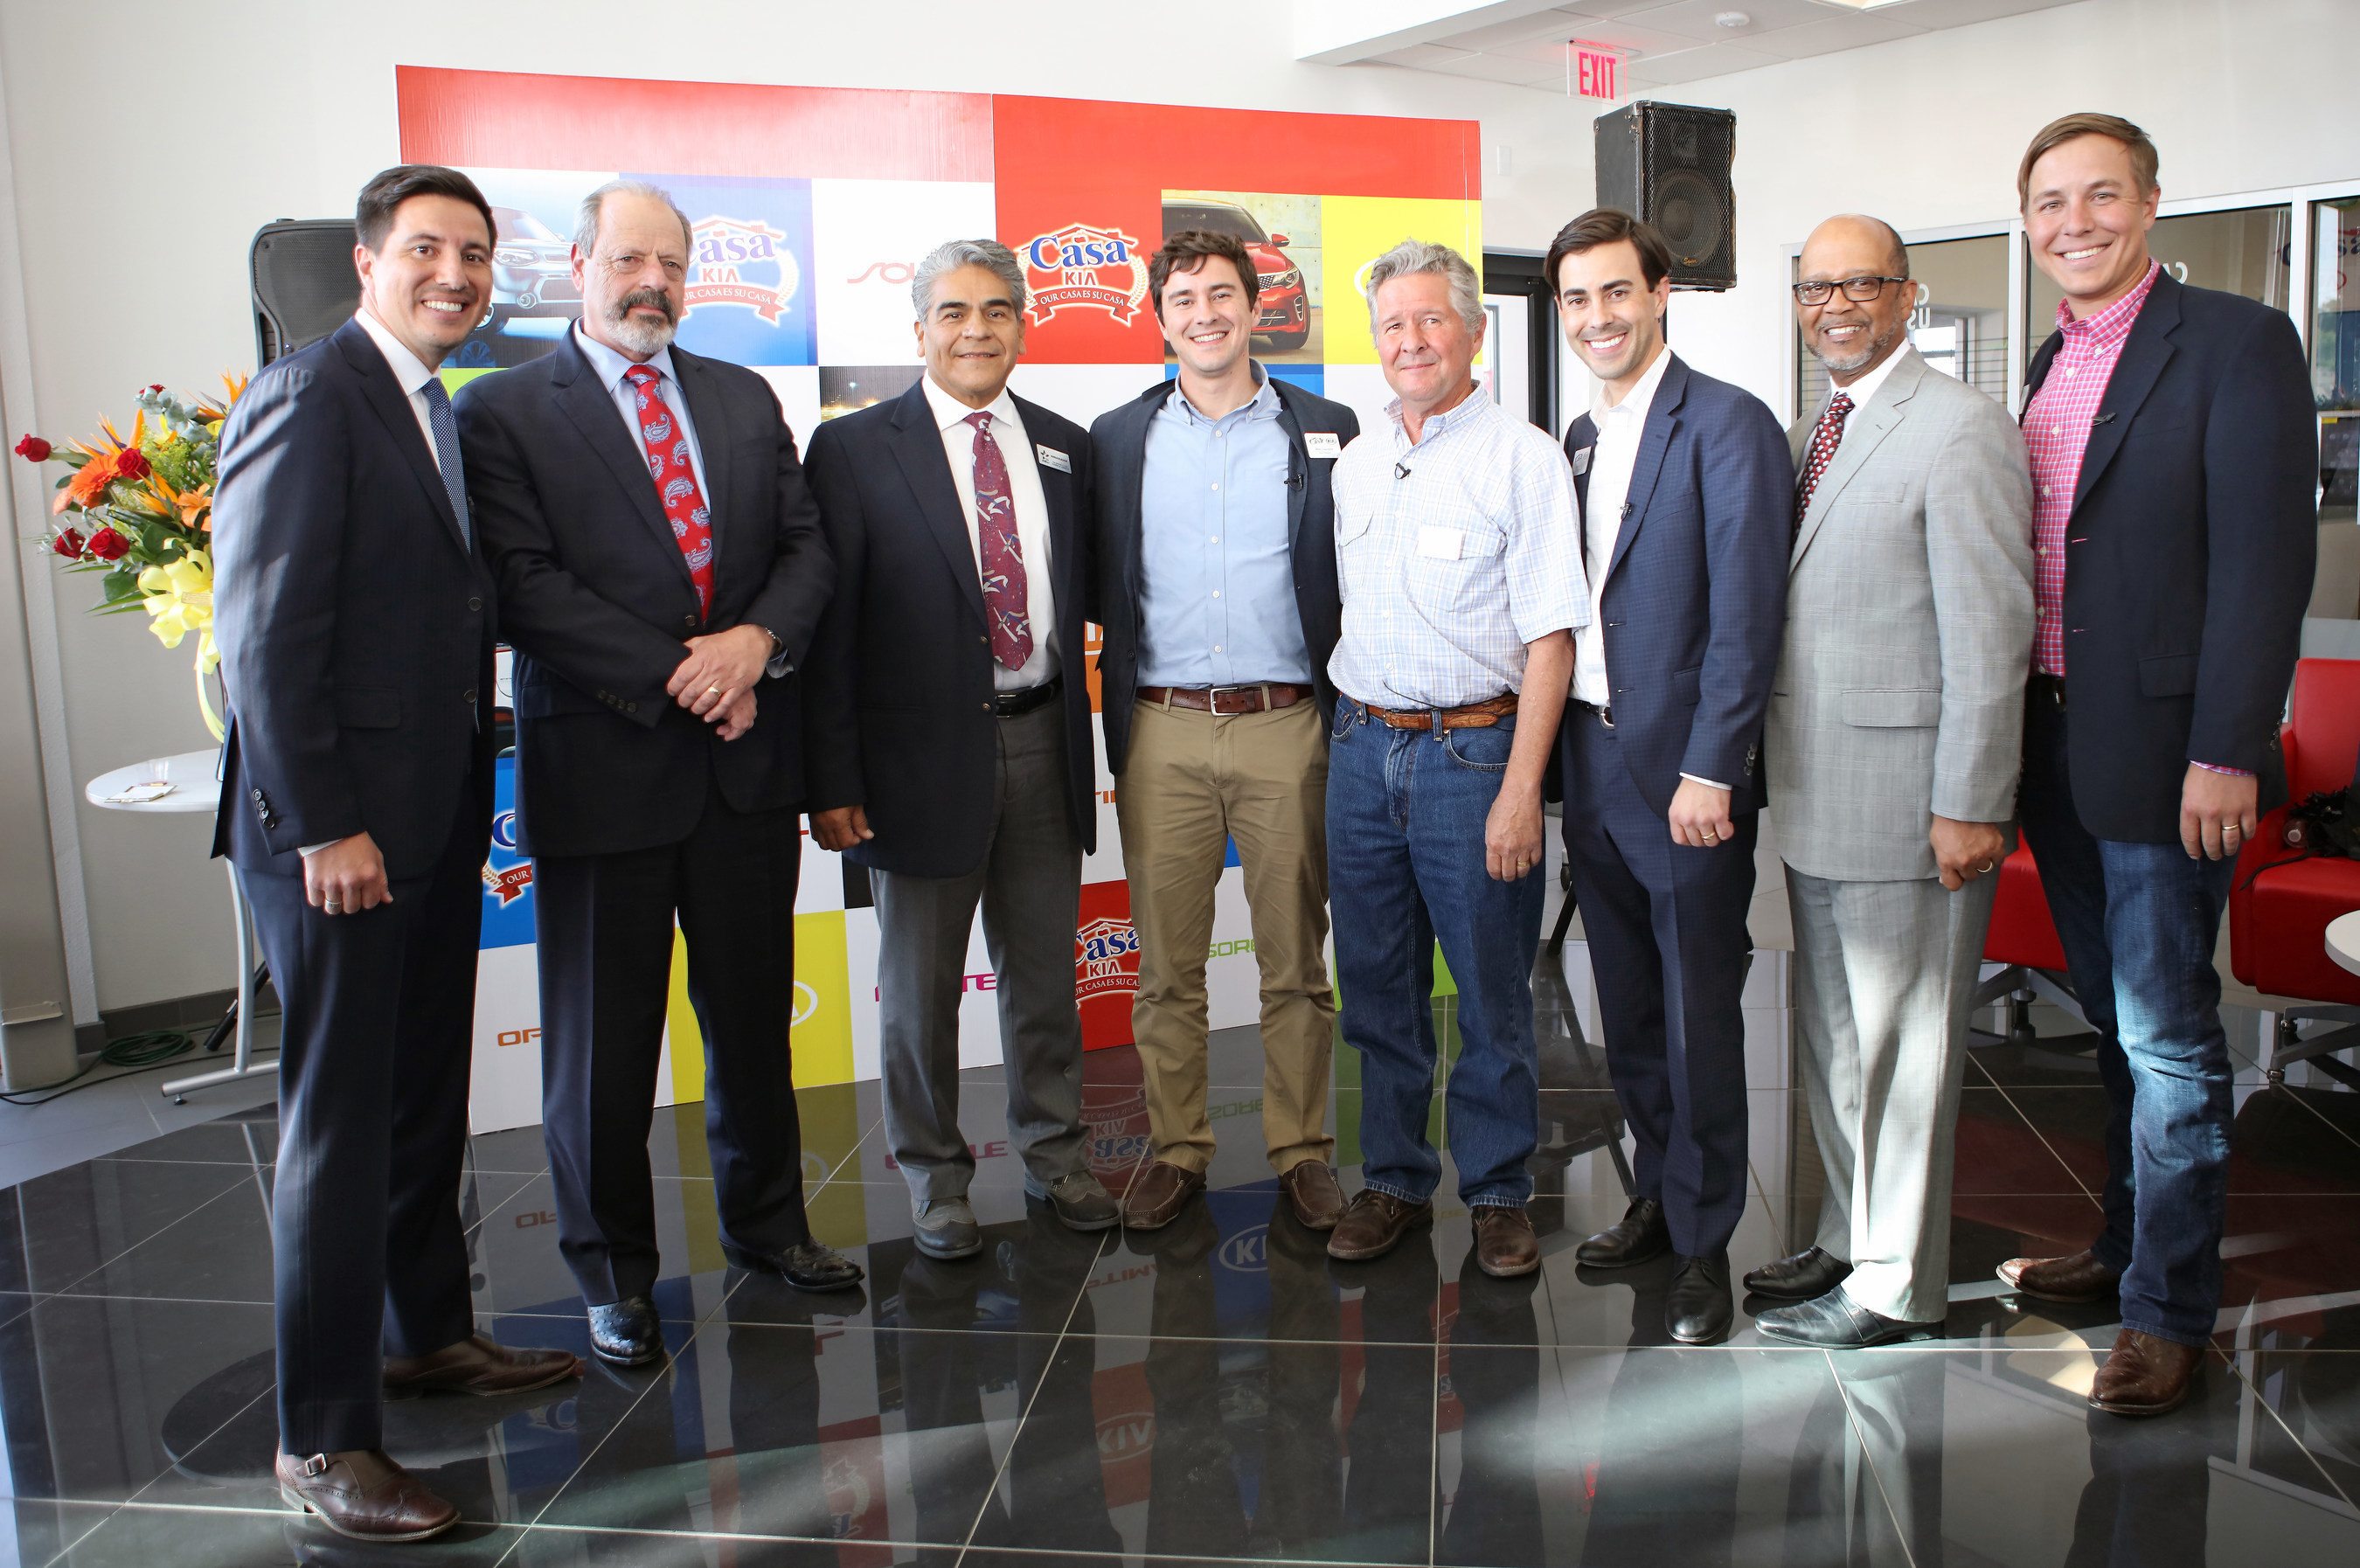 Casa Kia Opens As The Newest Jewel In The Lowenfield Family Of El Paso  Dealerships